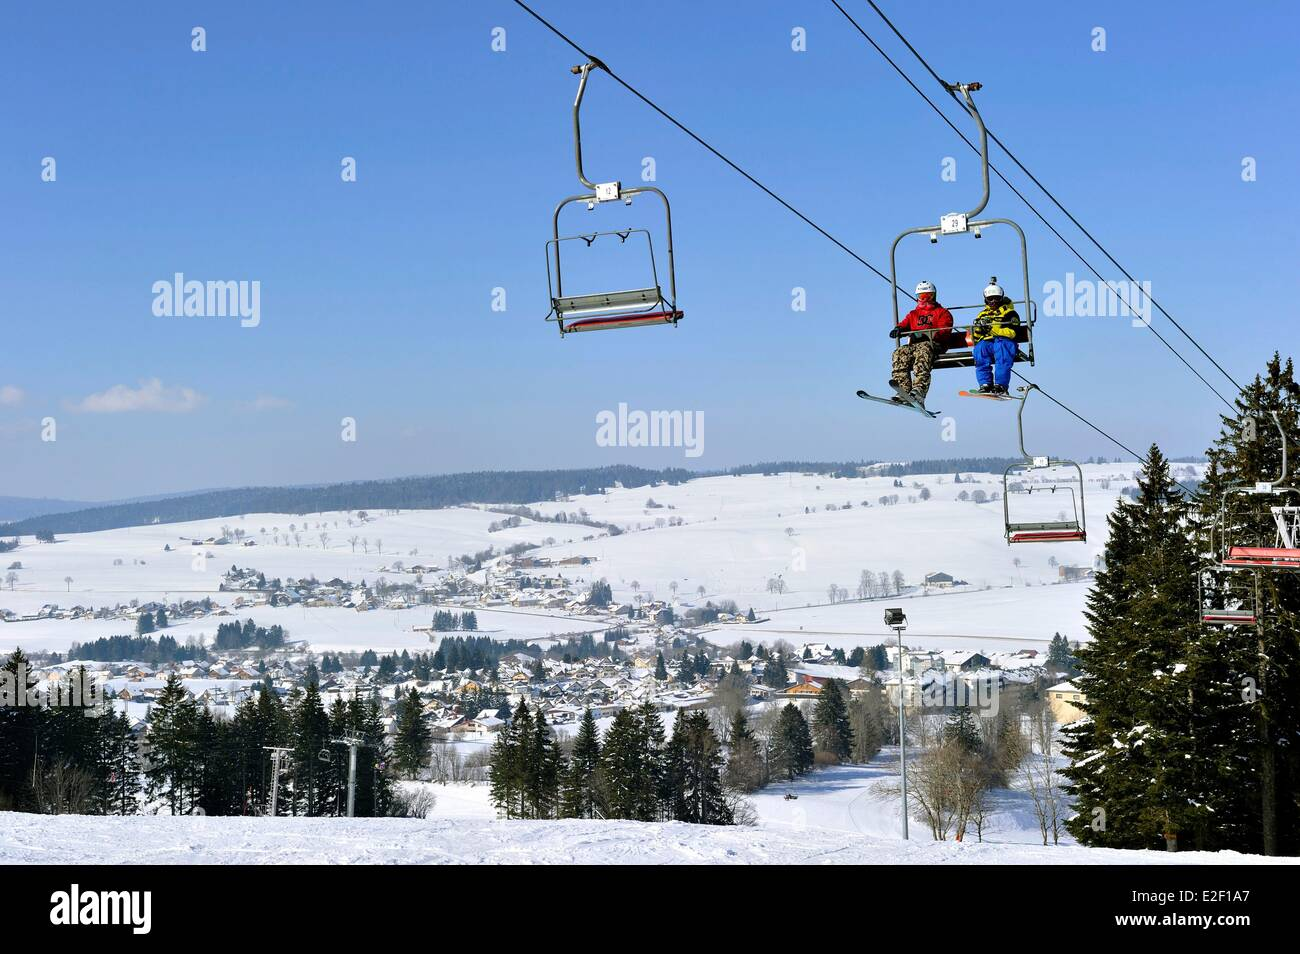 France, Doubs, Metabief, Mont d'Or winter sport station - Stock Image